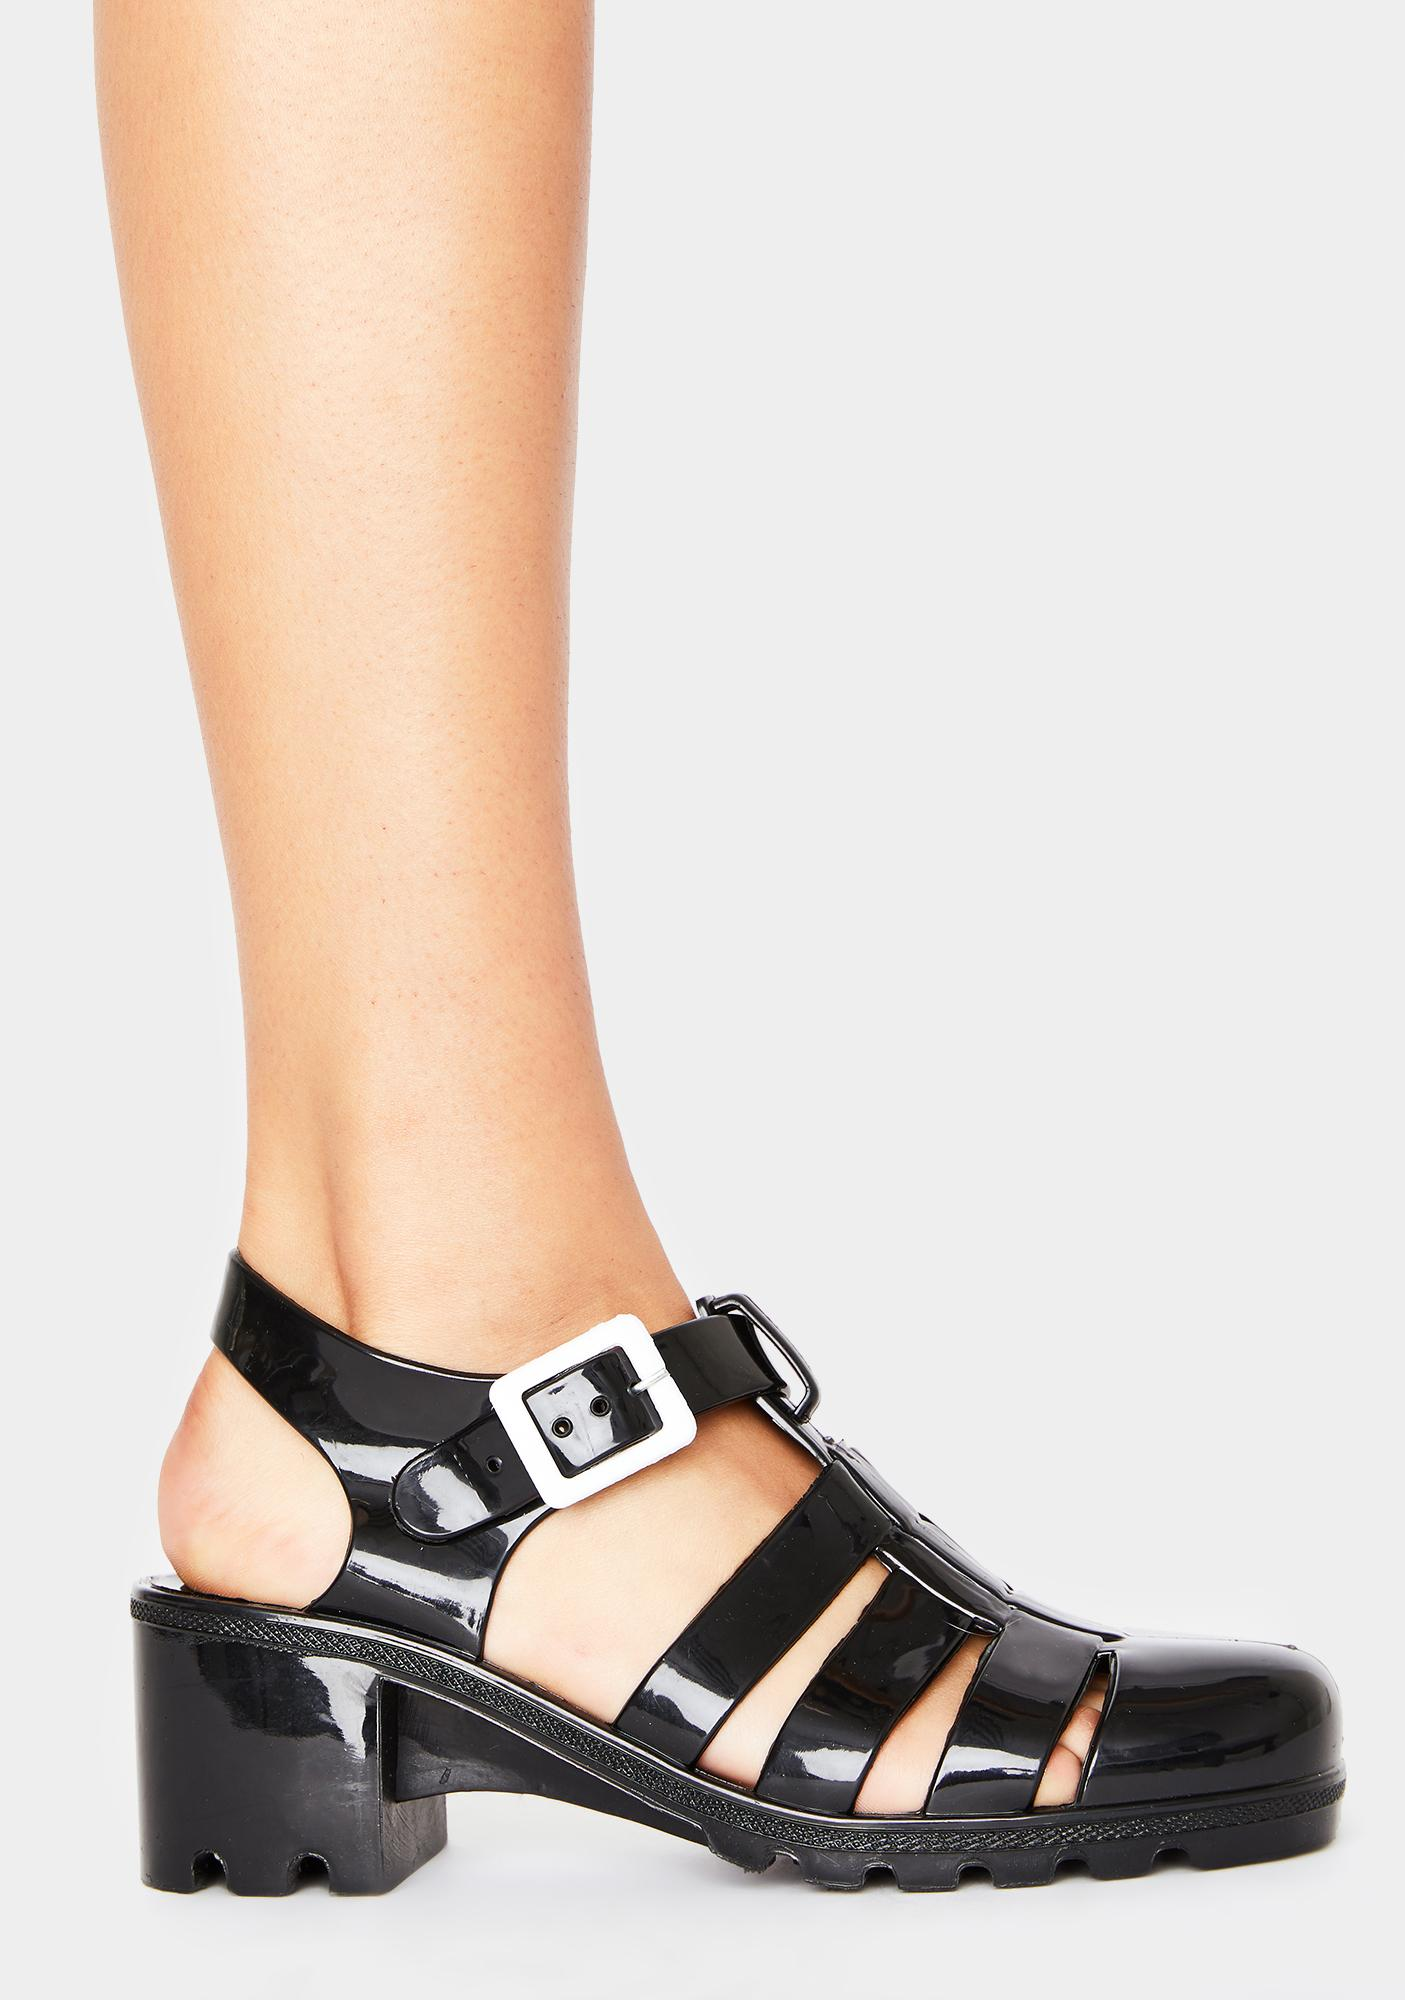 Dark Feel This Moment Jelly Sandals